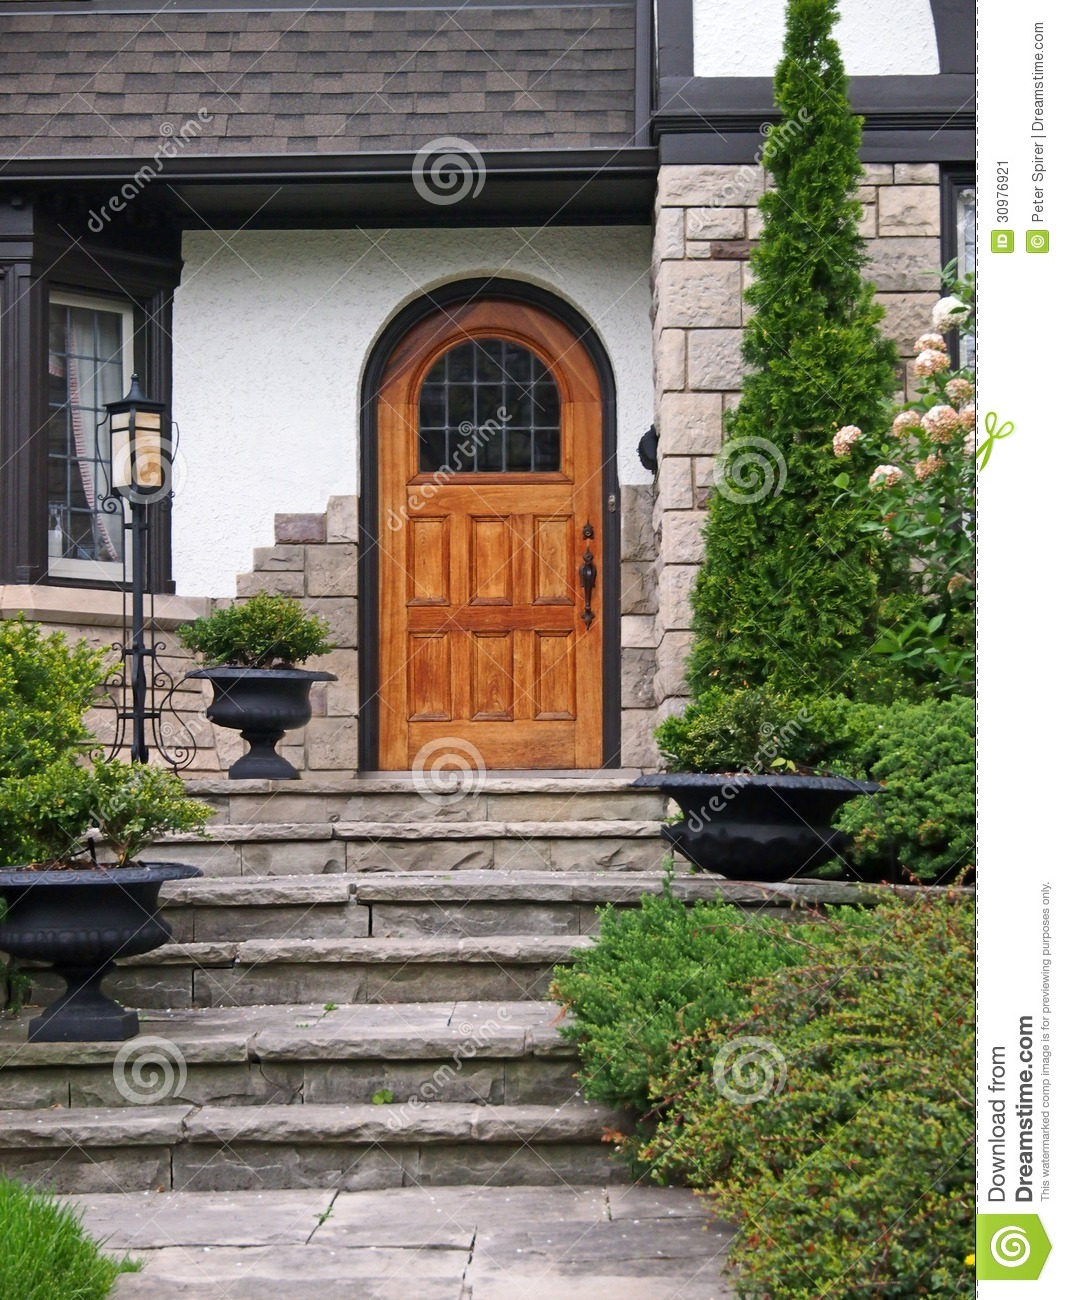 House Entrance With Flagstone Steps Stock Image - Image: 30976921